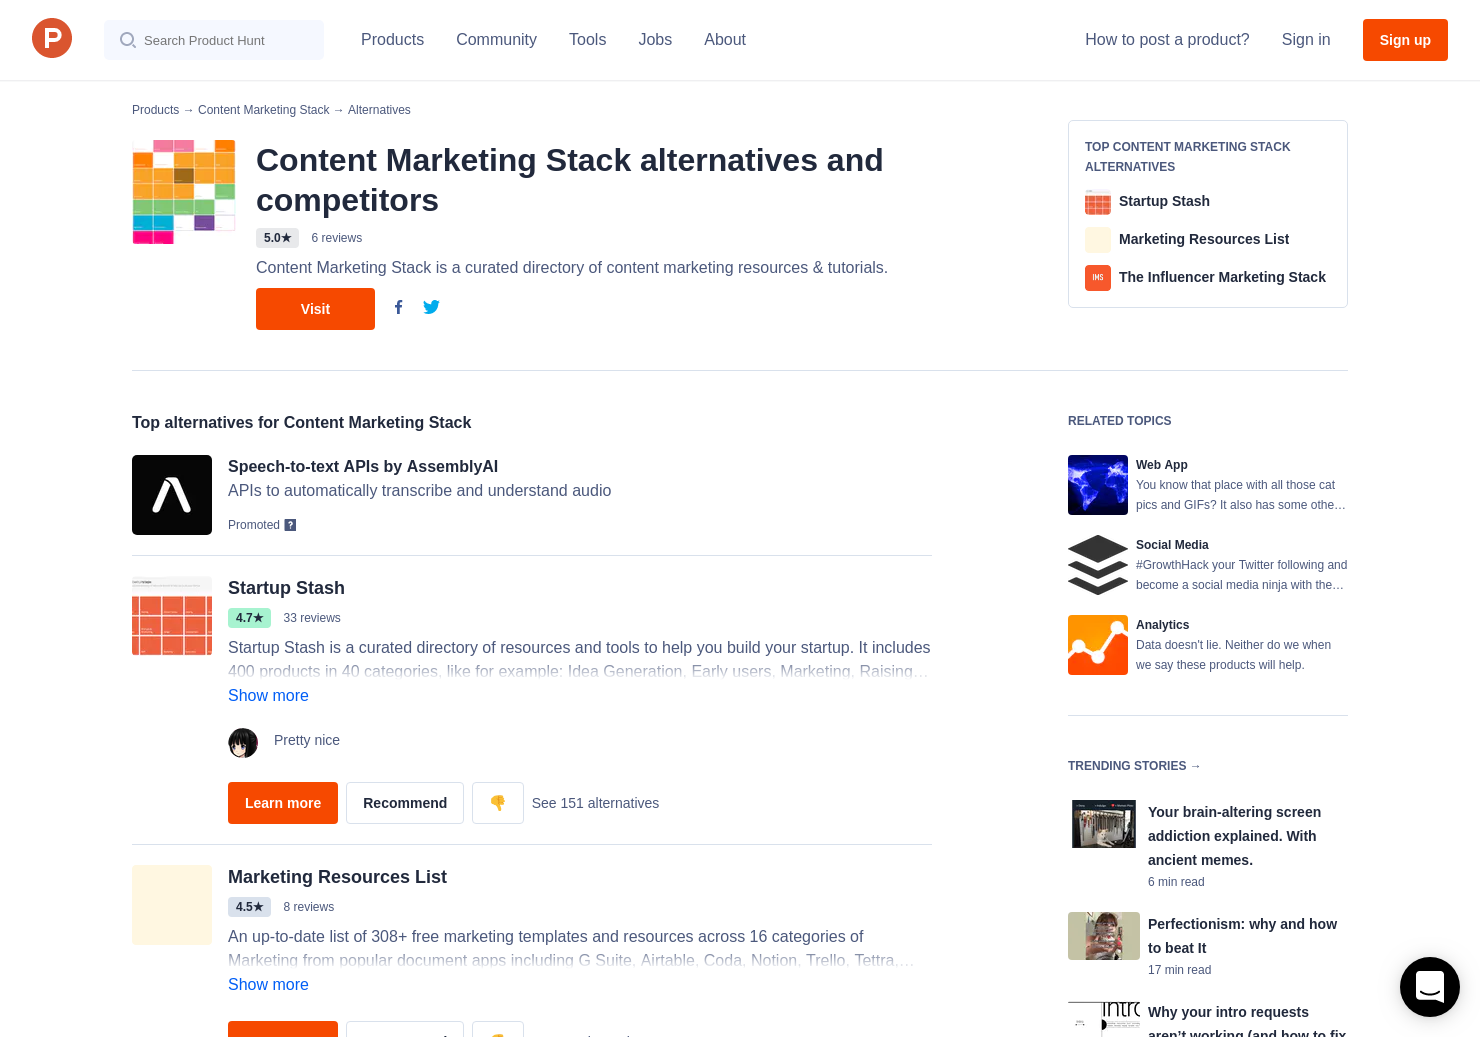 72 Alternatives to Content Marketing Stack | Product Hunt